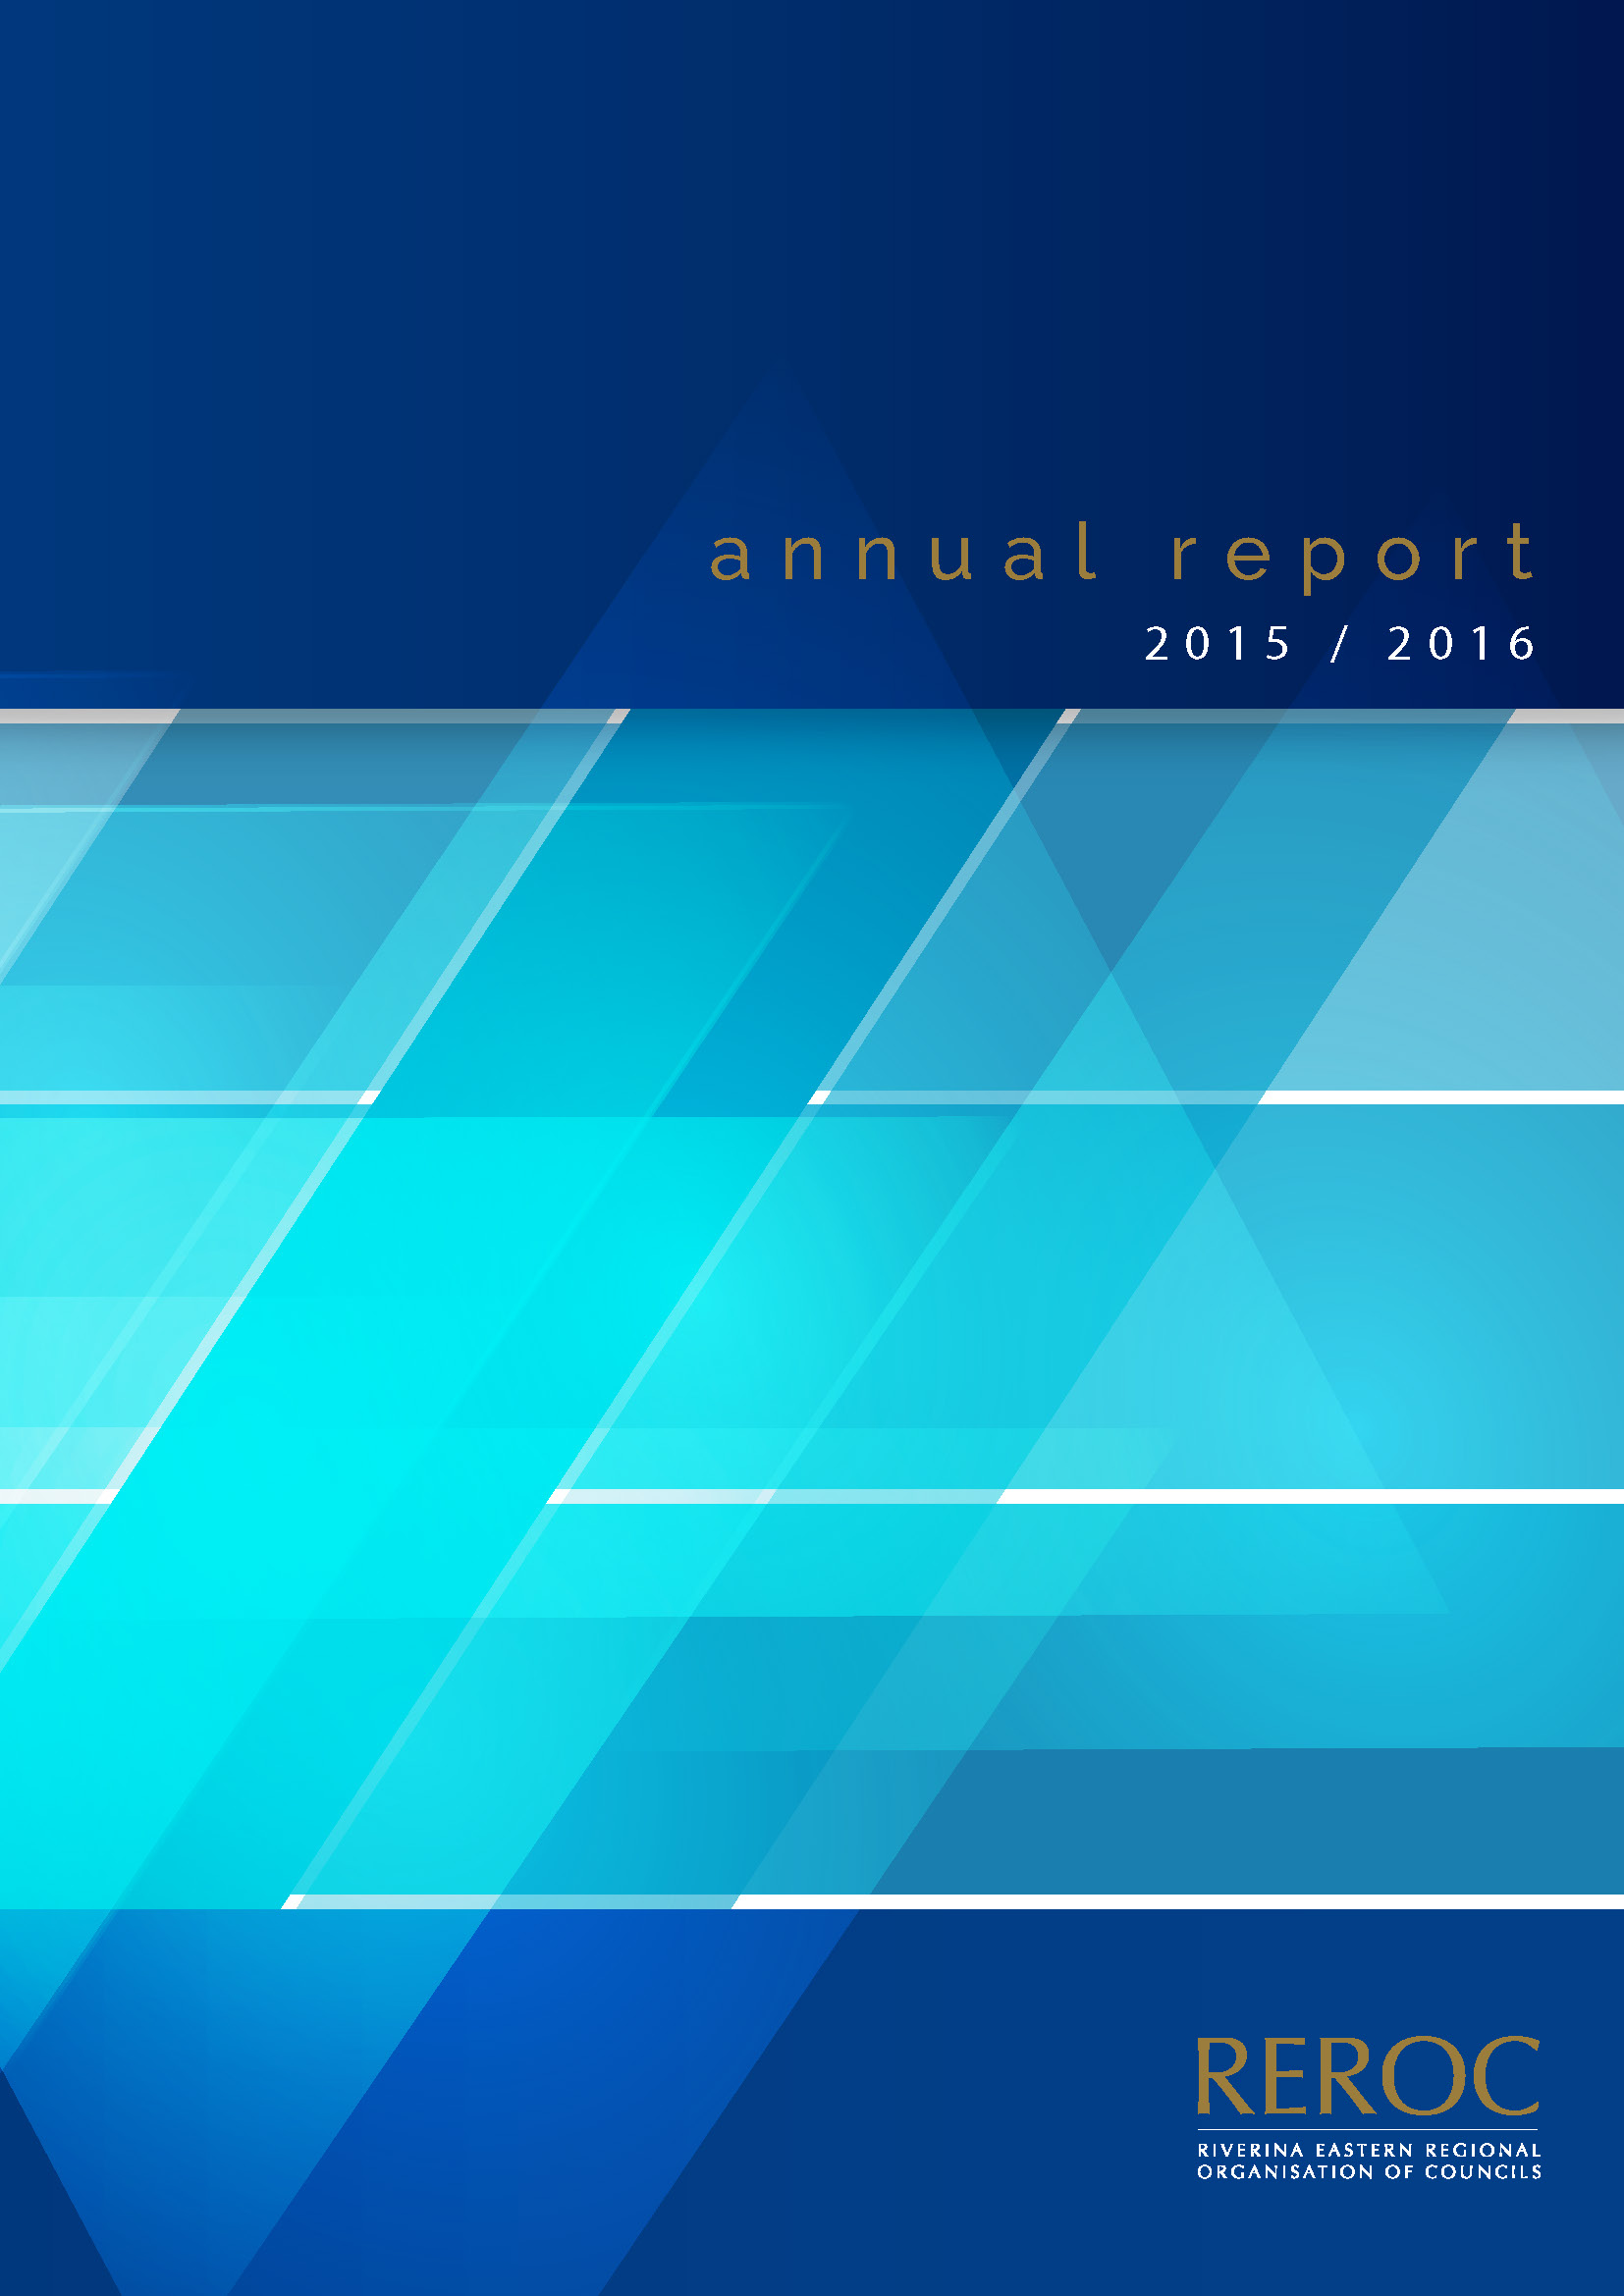 REROC+Annual+Report_15-16_Final_0_Page_01.jpg